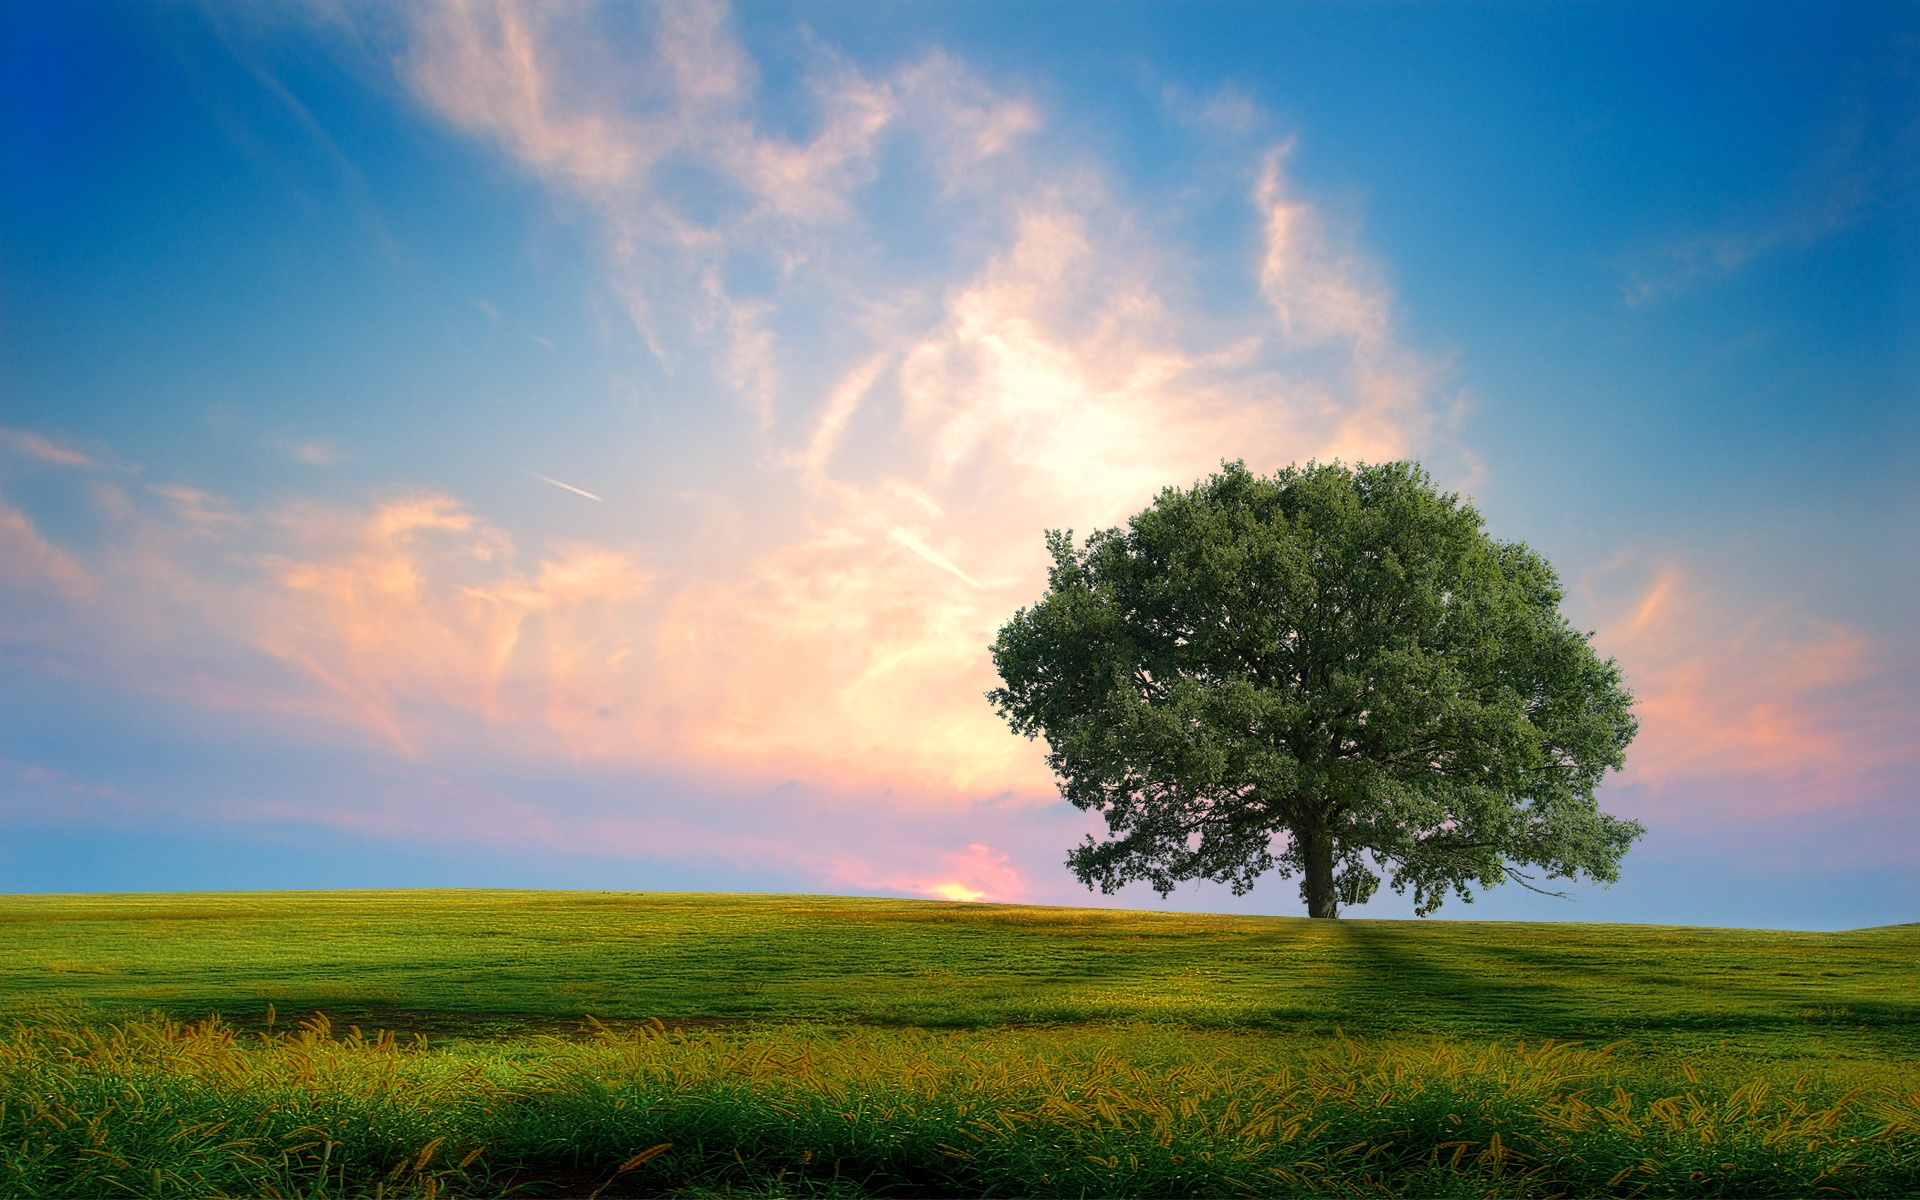 Nature wallpaper nature scenes wallpapers for free download about ...